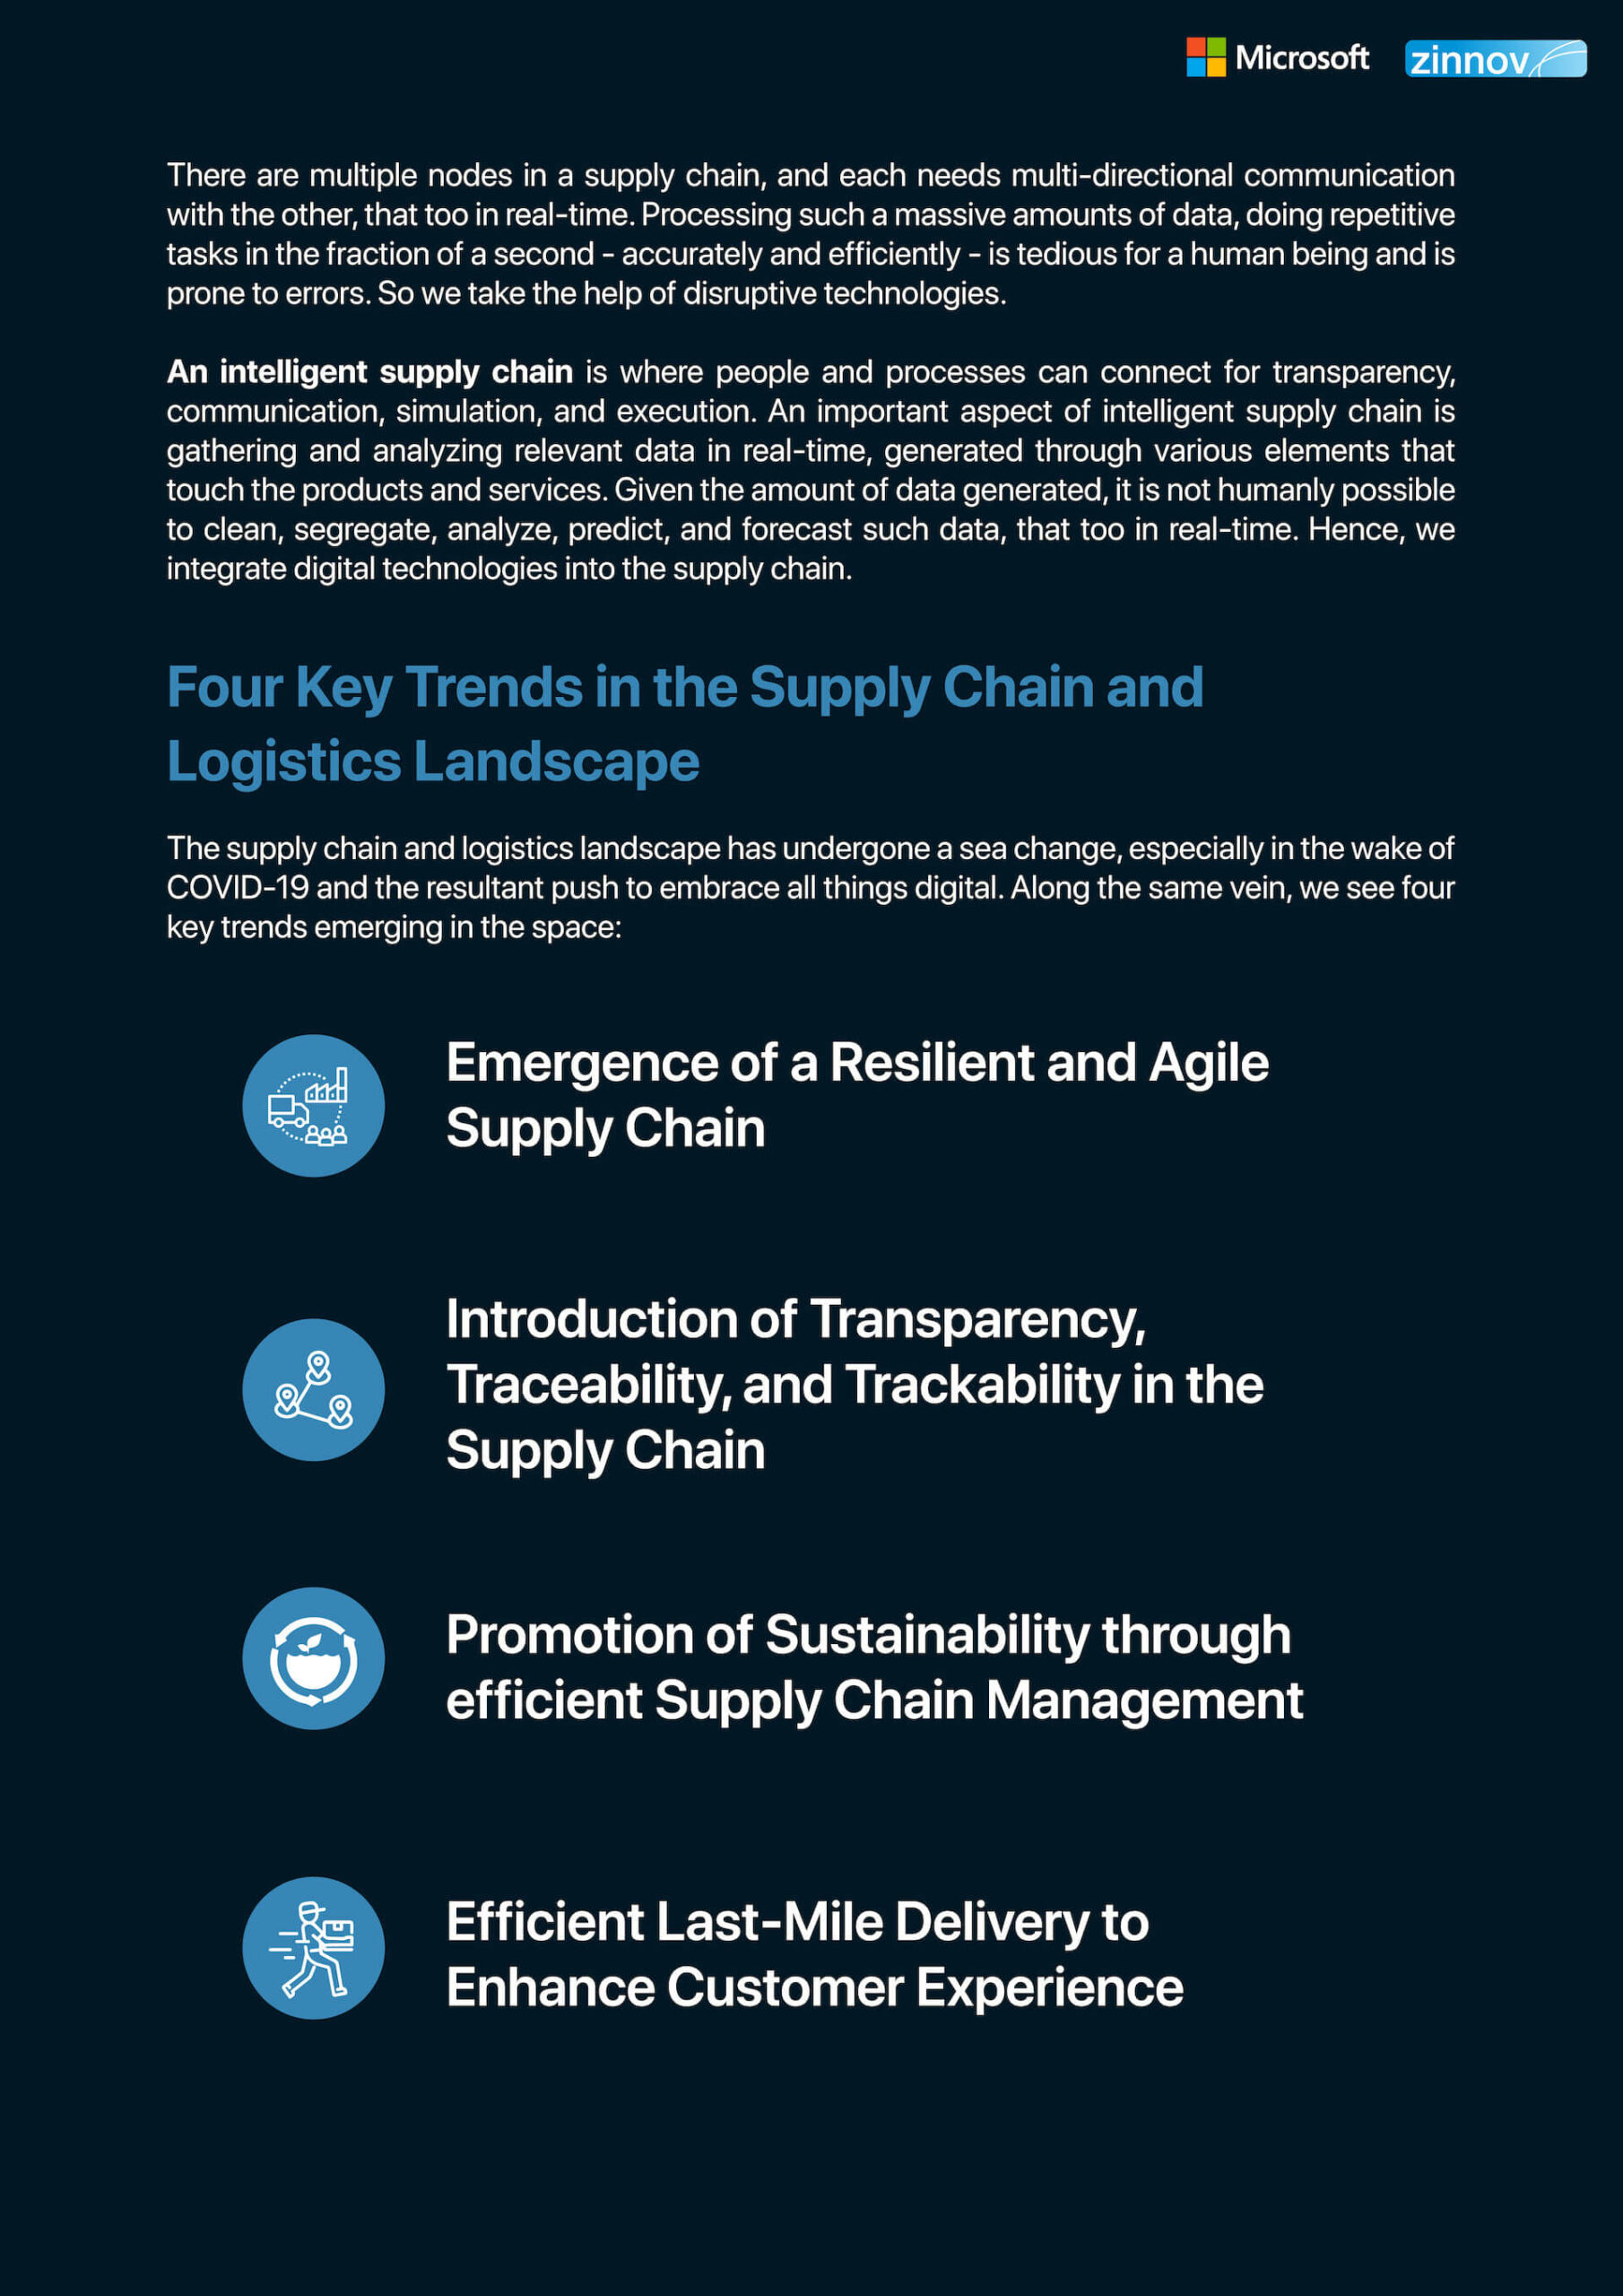 How 'Intelligent' Is Your Supply Chain?